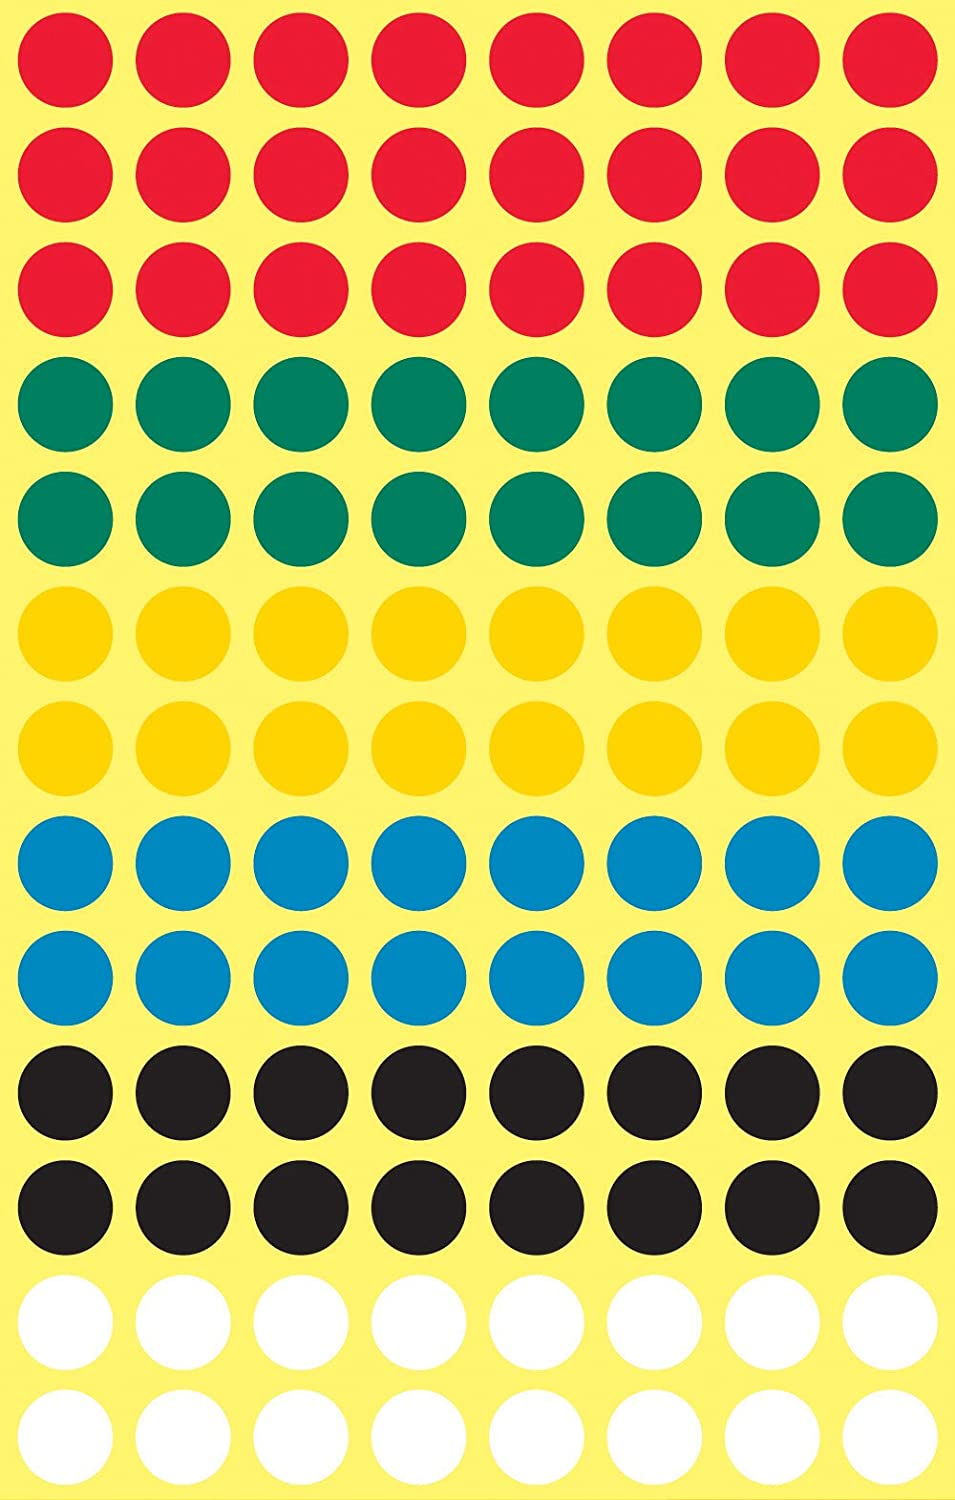 416/Labels Avery Zweckform 3090/Coding Dots 8/mm Diameter 4/Sheets Assorted Colours